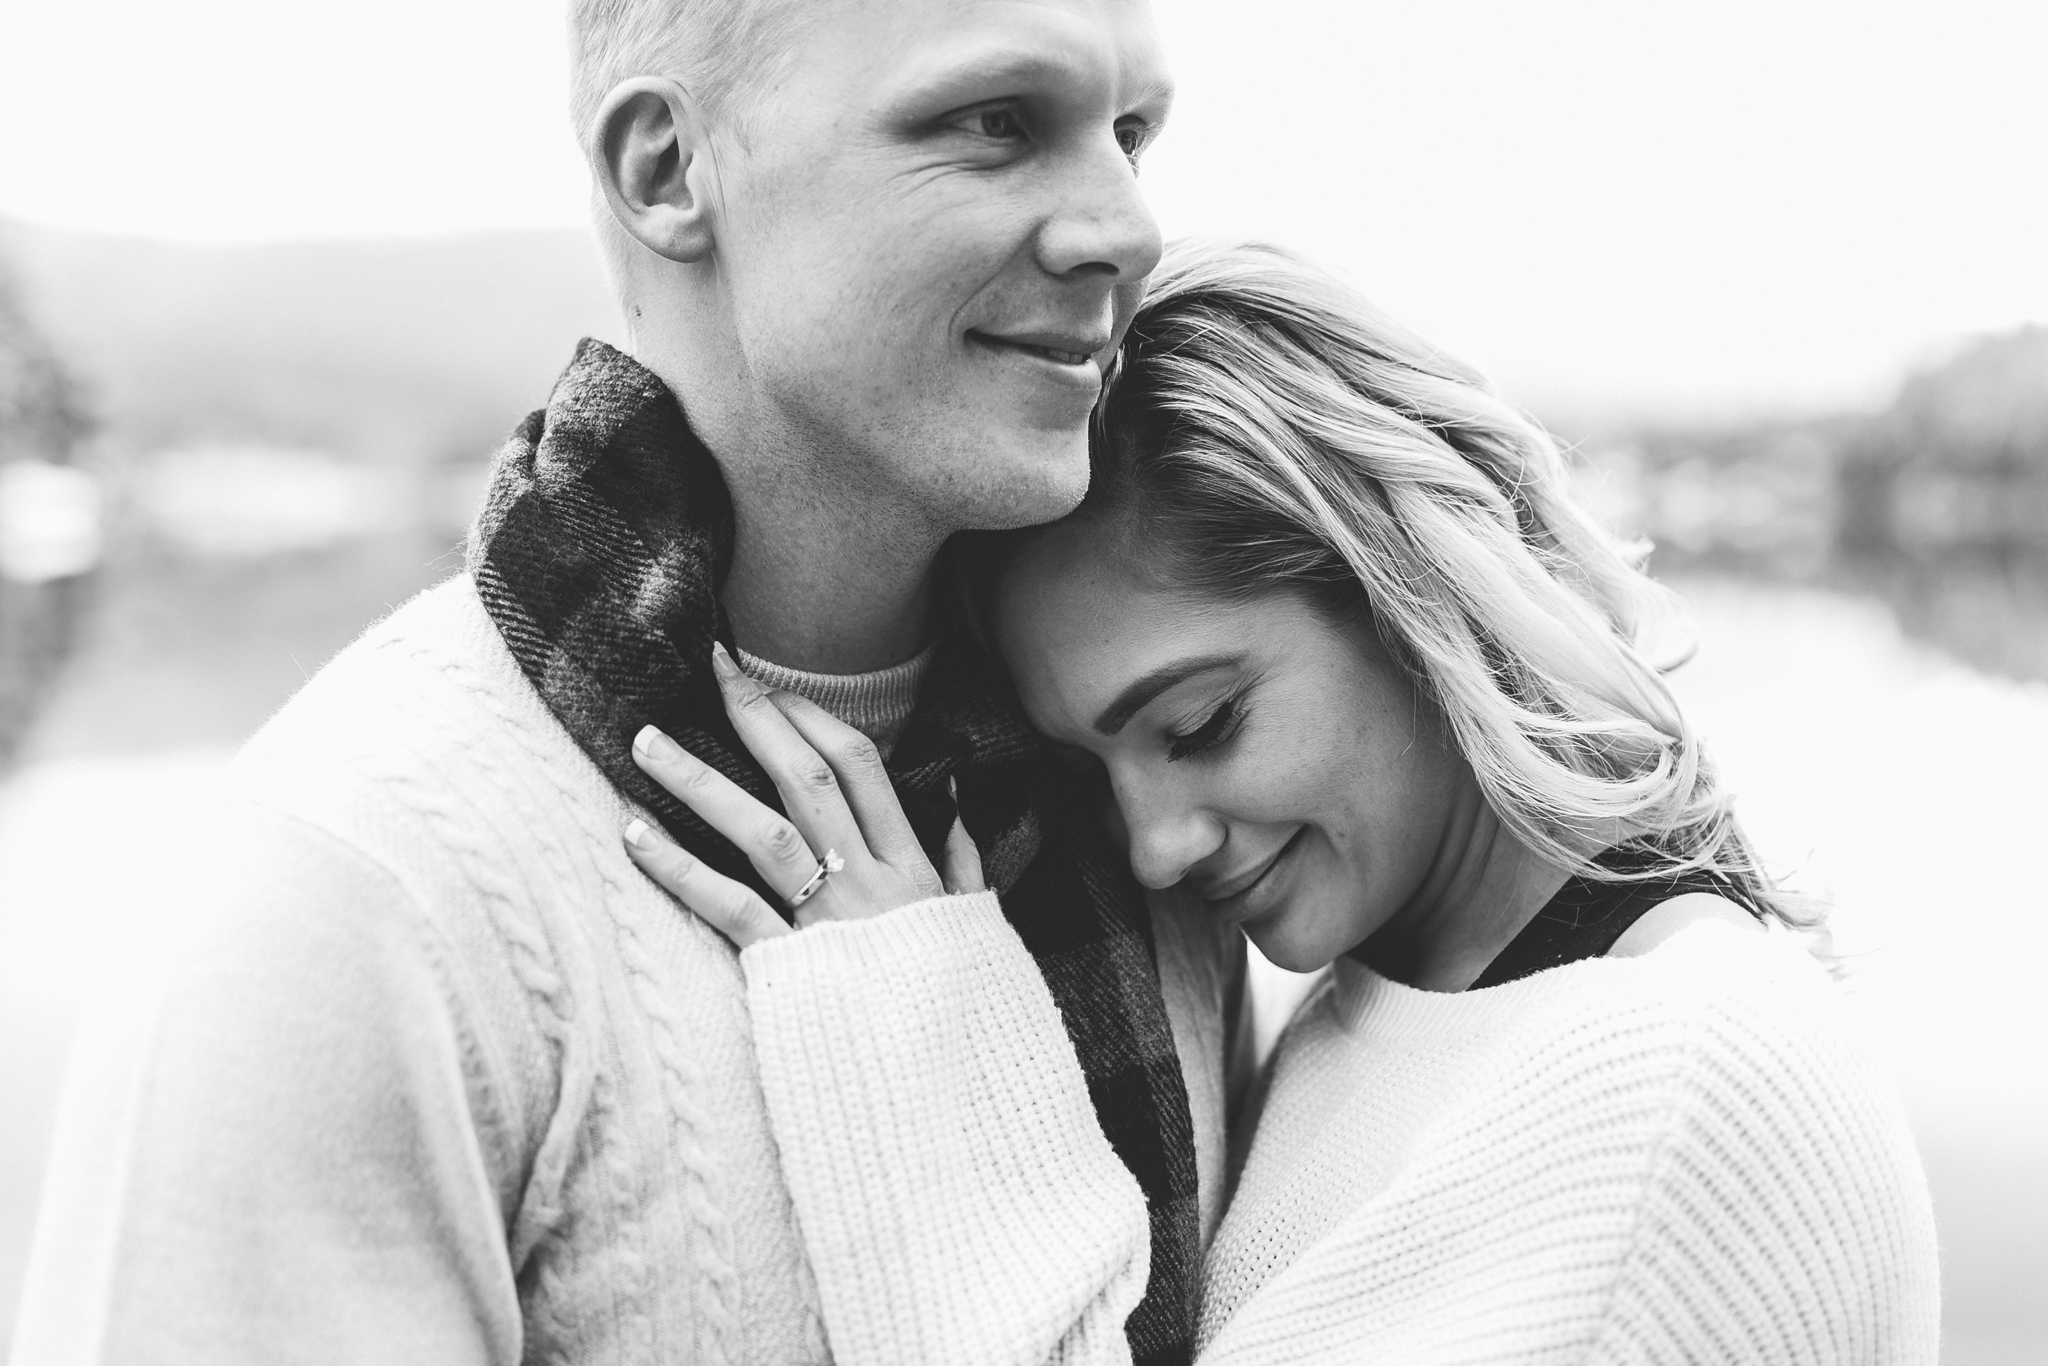 love-and-be-loved-photography-mountain-engagement-ashlyn-rob-perfect-fit-4-u-photo-image-picture-23.jpg